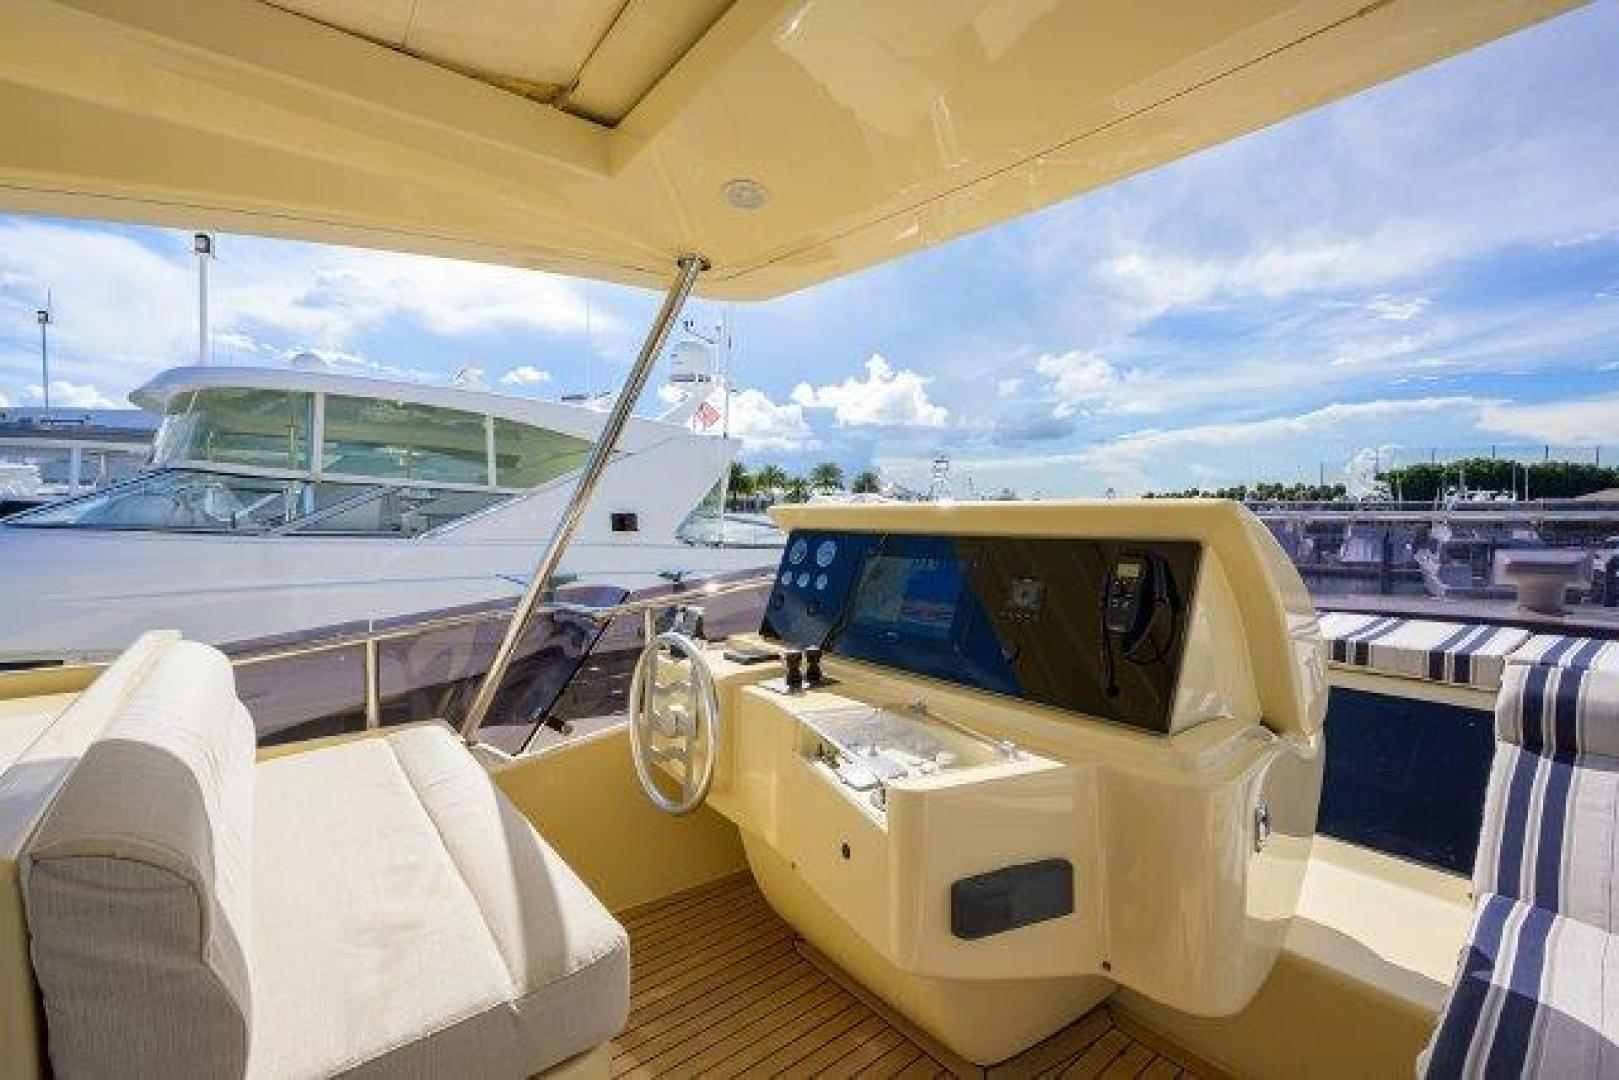 Ferretti Yachts-Altura 840 2010-MISS ALLIED Jupiter-Florida-United States-Flybridge-1518350 | Thumbnail